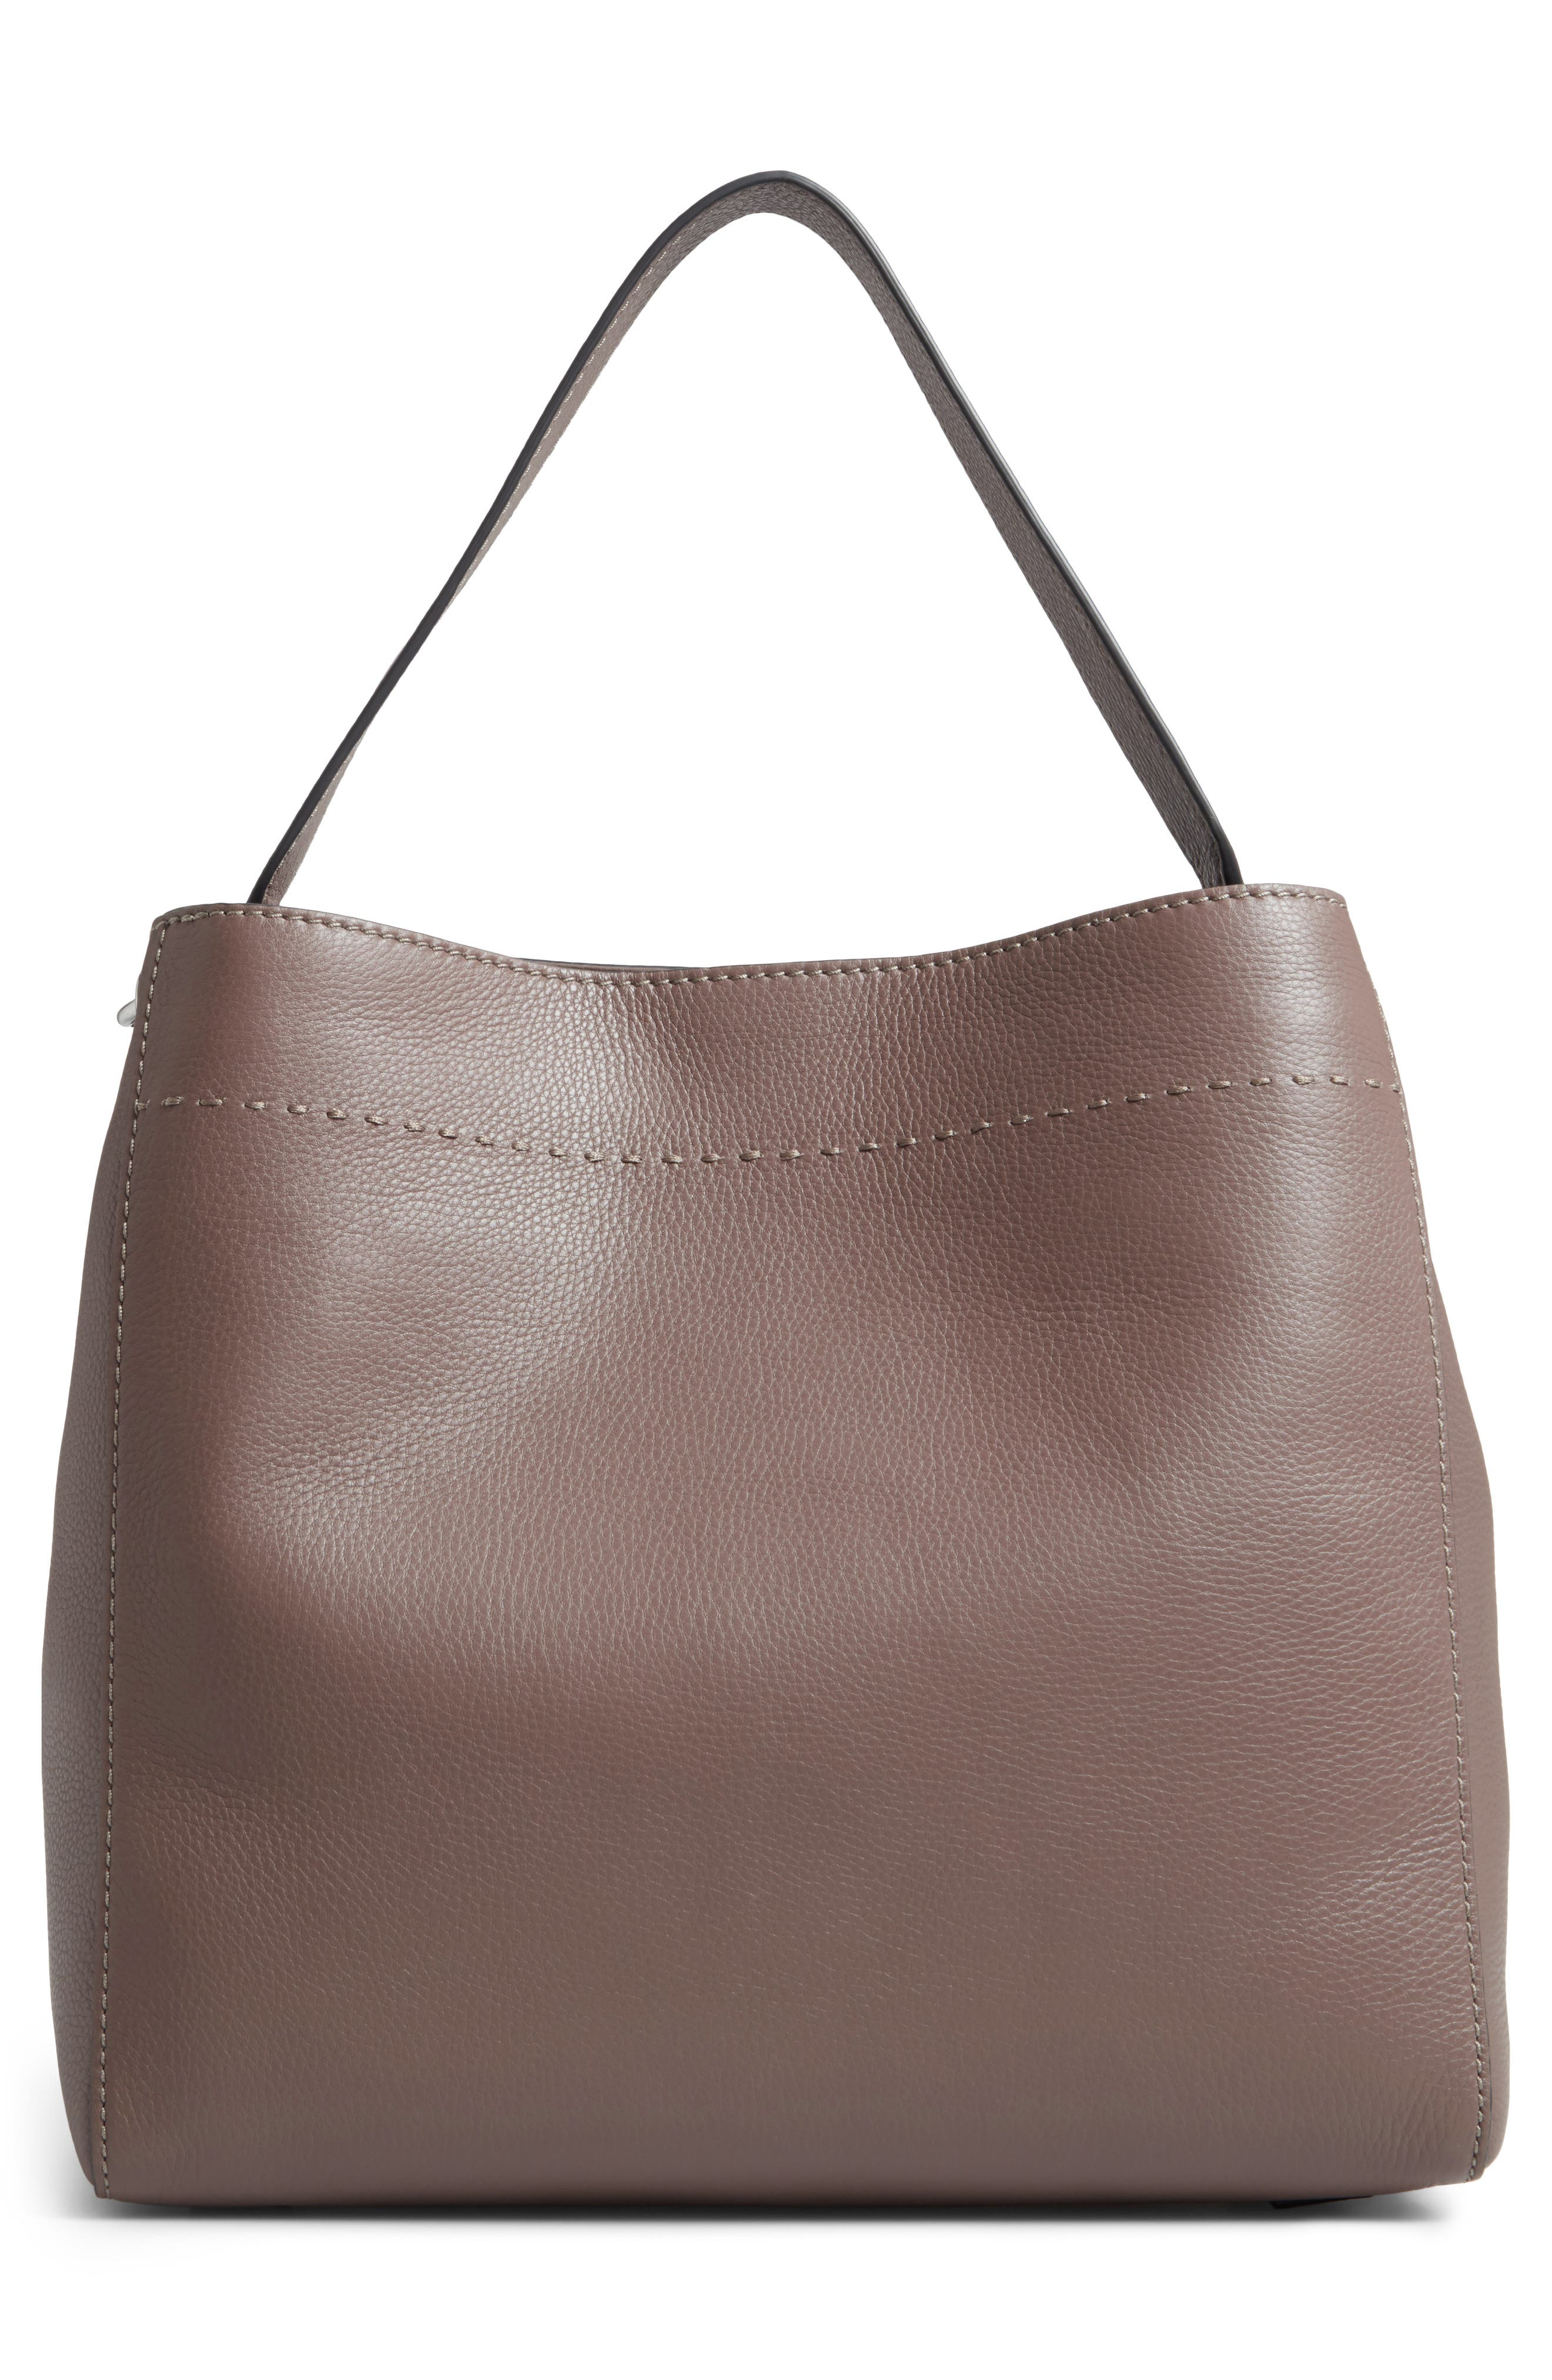 Alternate Image 3  - Tory Burch McGraw Leather Hobo